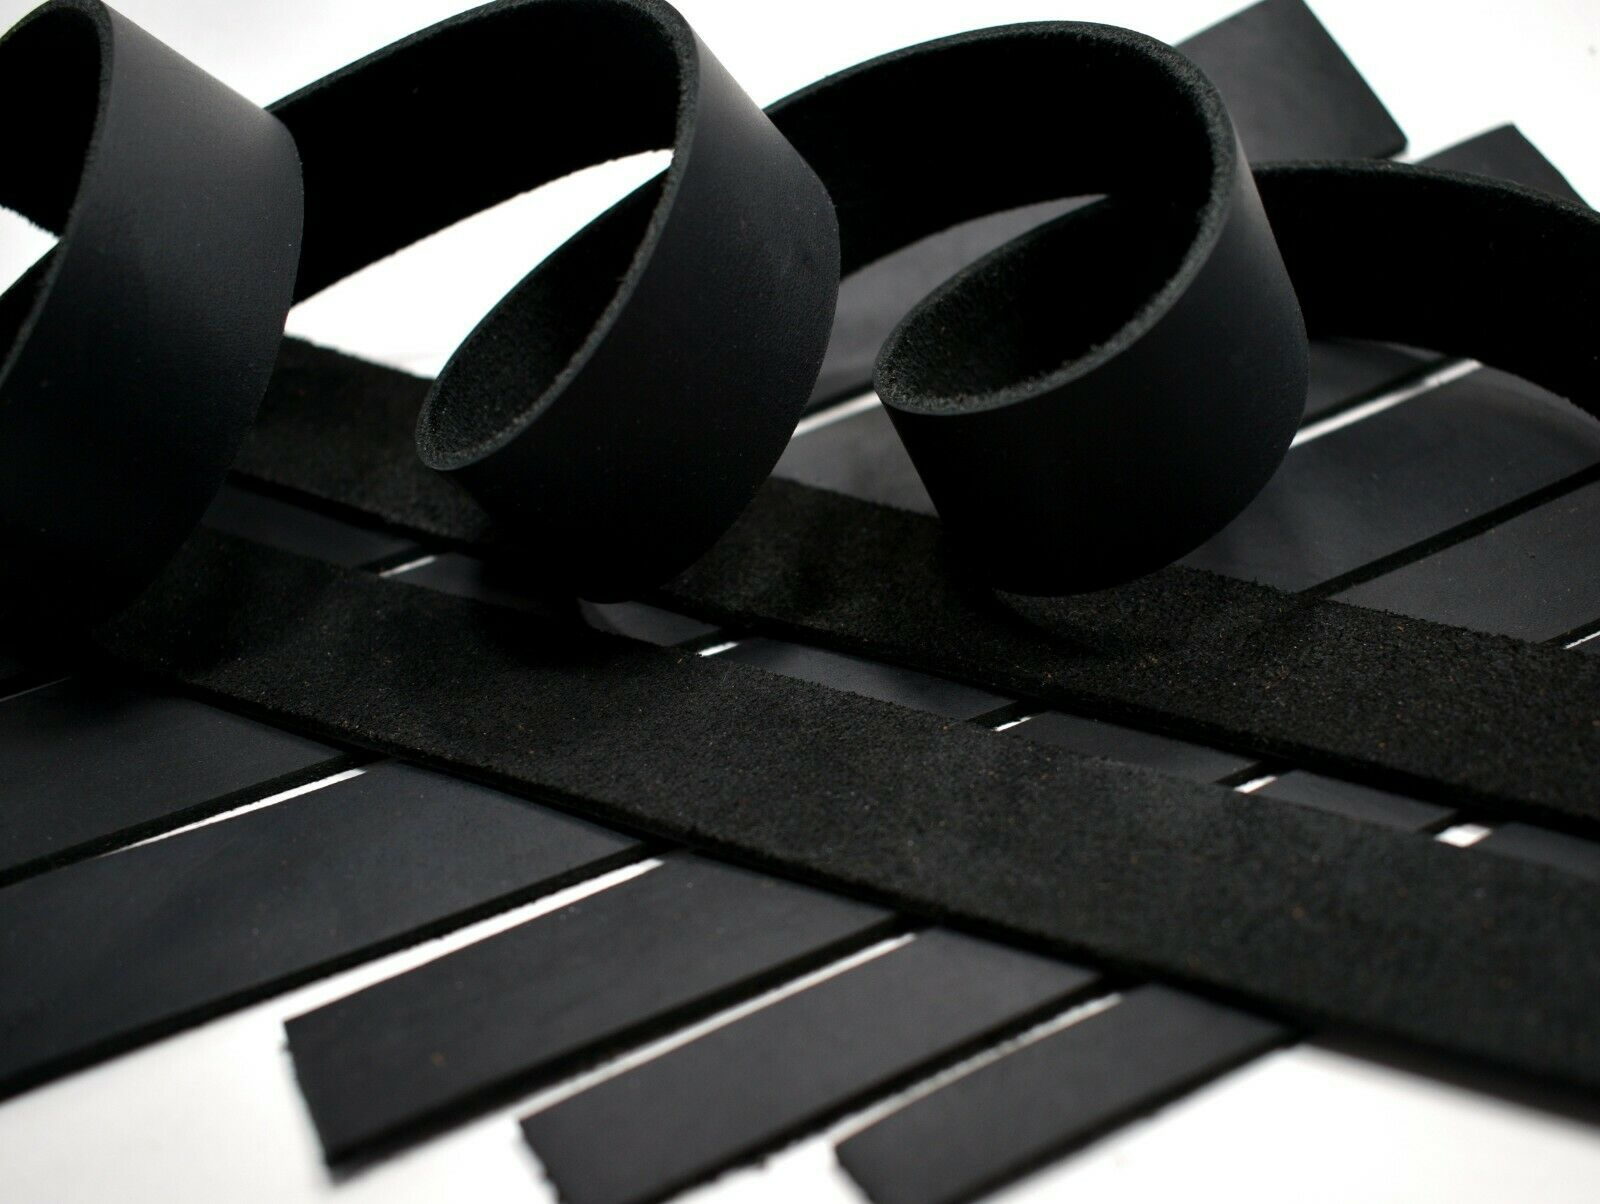 SECONDS: Black Oil-Tanned Leather  Strip Strap LeatherRush